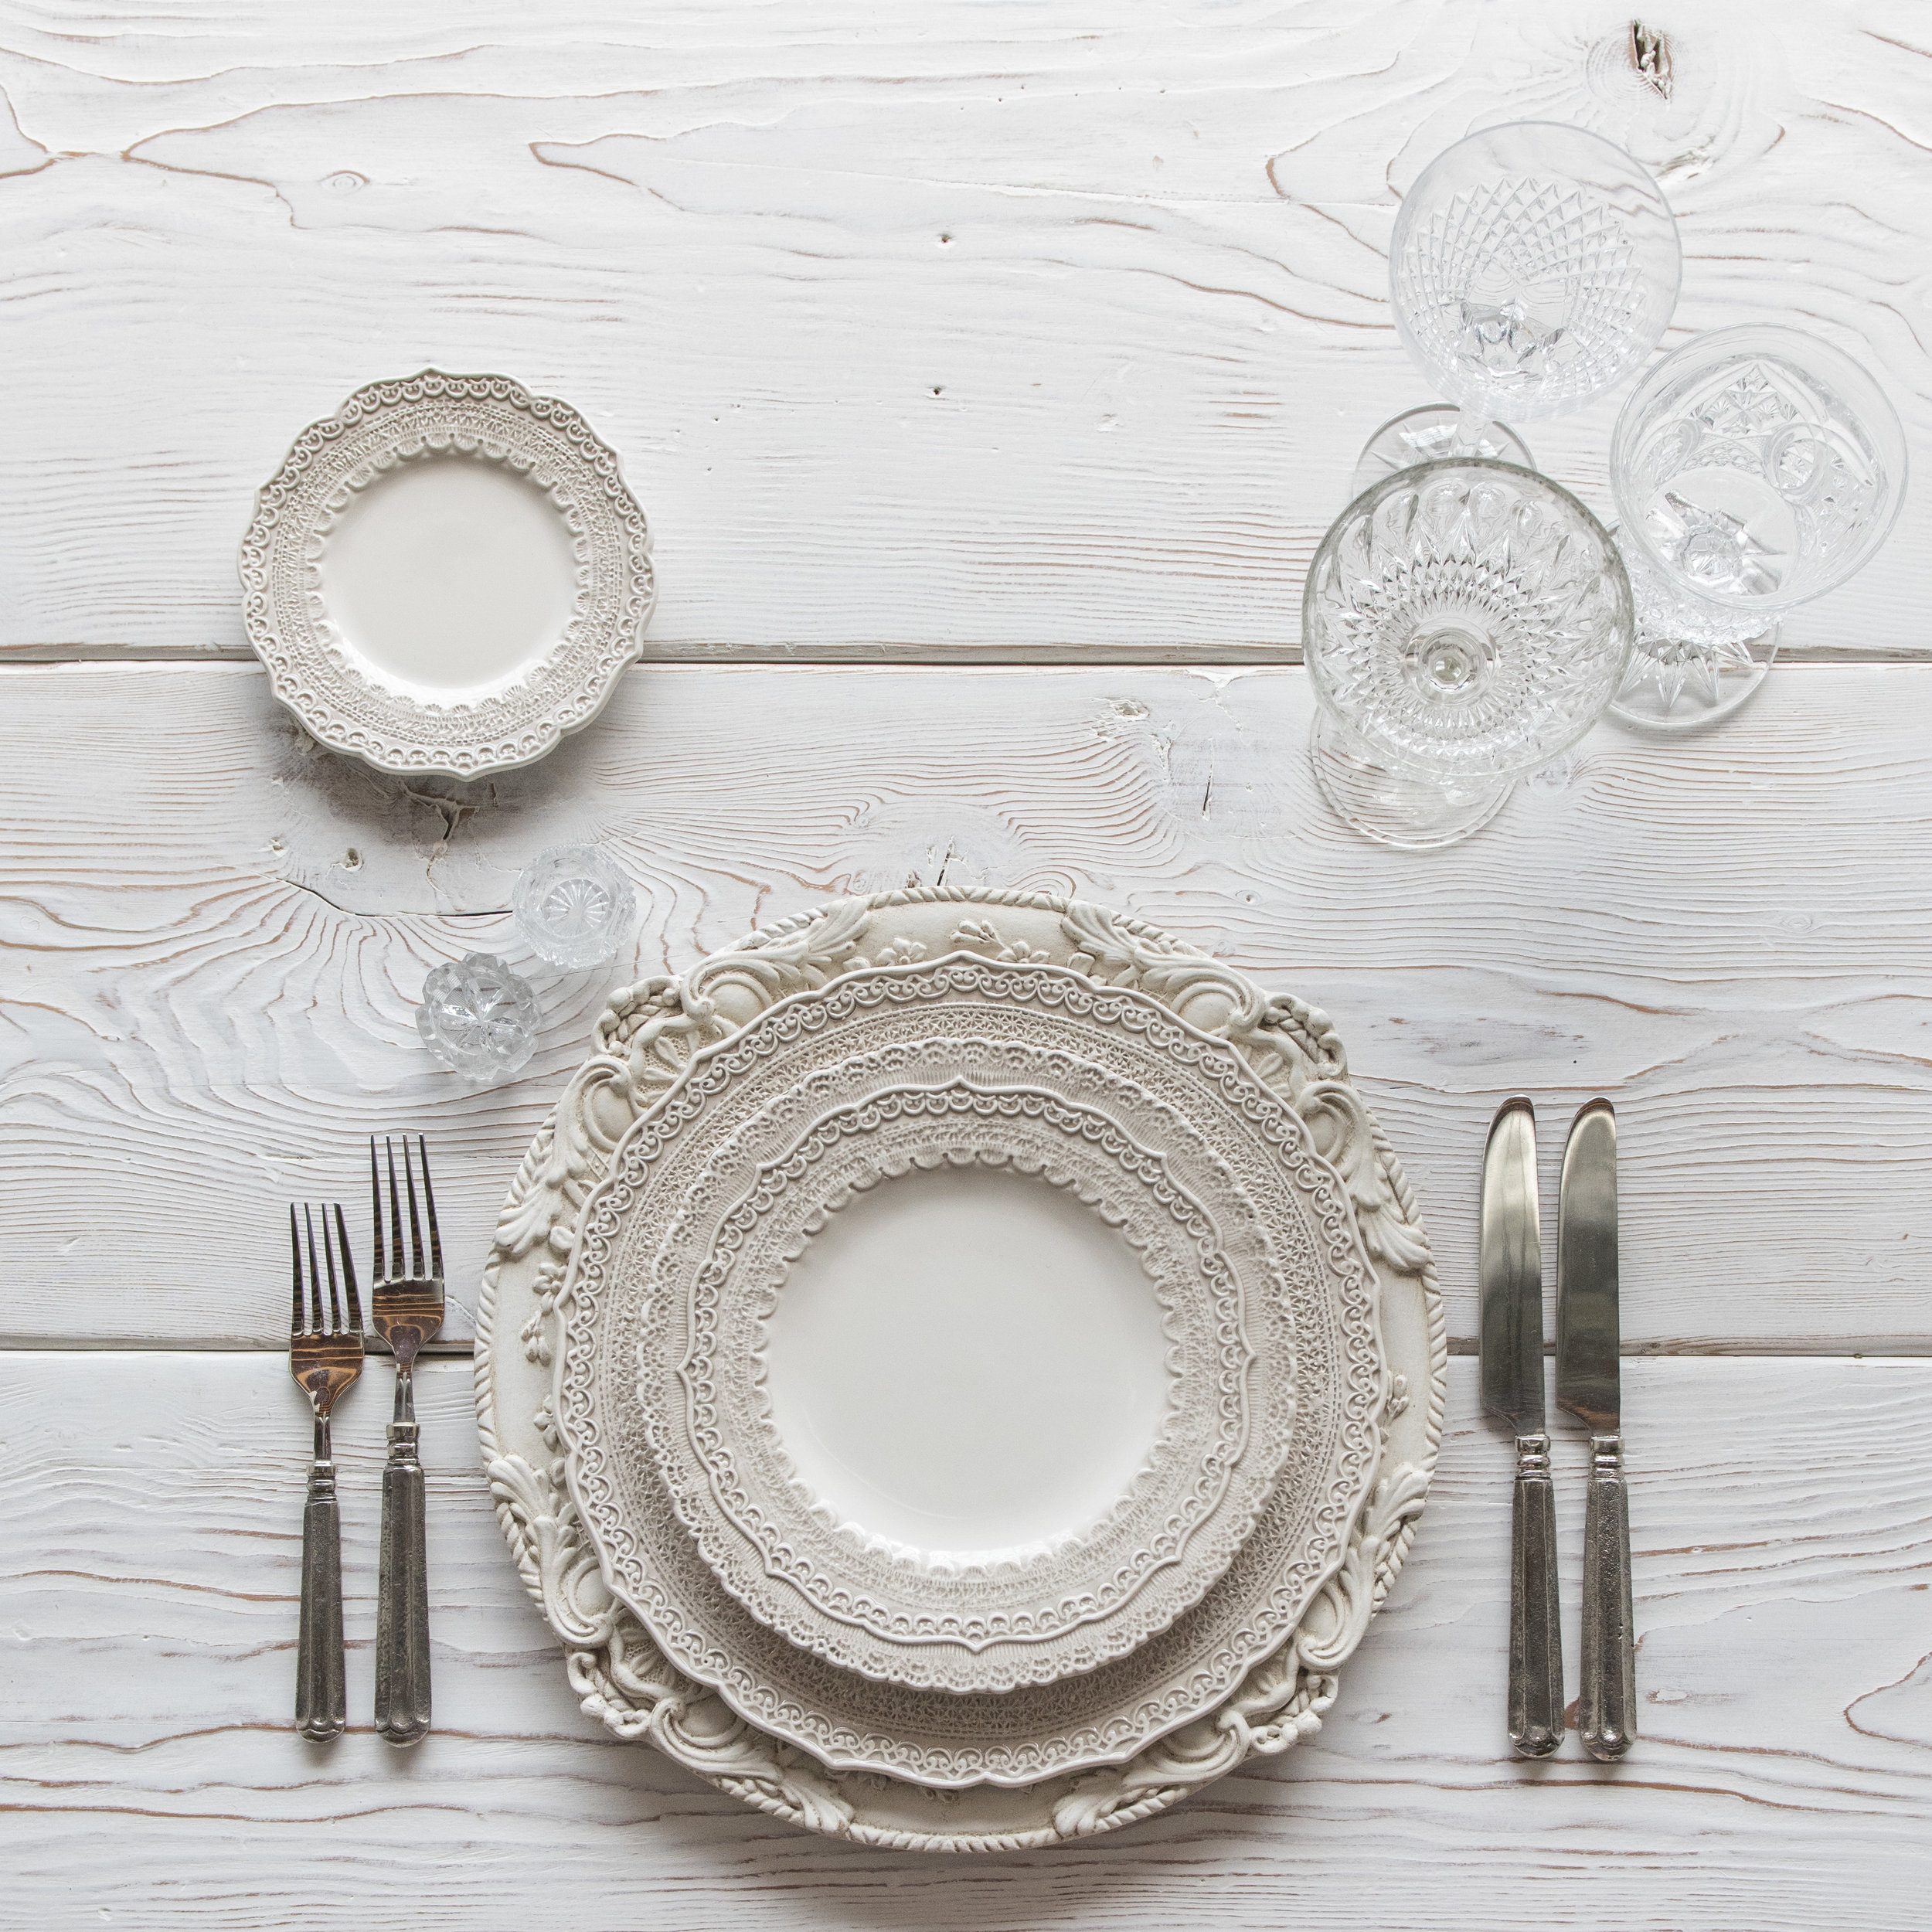 RENT: Verona Chargers in Antique White + Lace Dinnerware in White + Tuscan Flatware in Pewter + Vintage Cut Crystal Goblets + Early American Pressed Glass Goblets + Vintage Champagne Coupes + Antique Crystal Salt Cellars  SHOP:Verona Chargers in Antique White